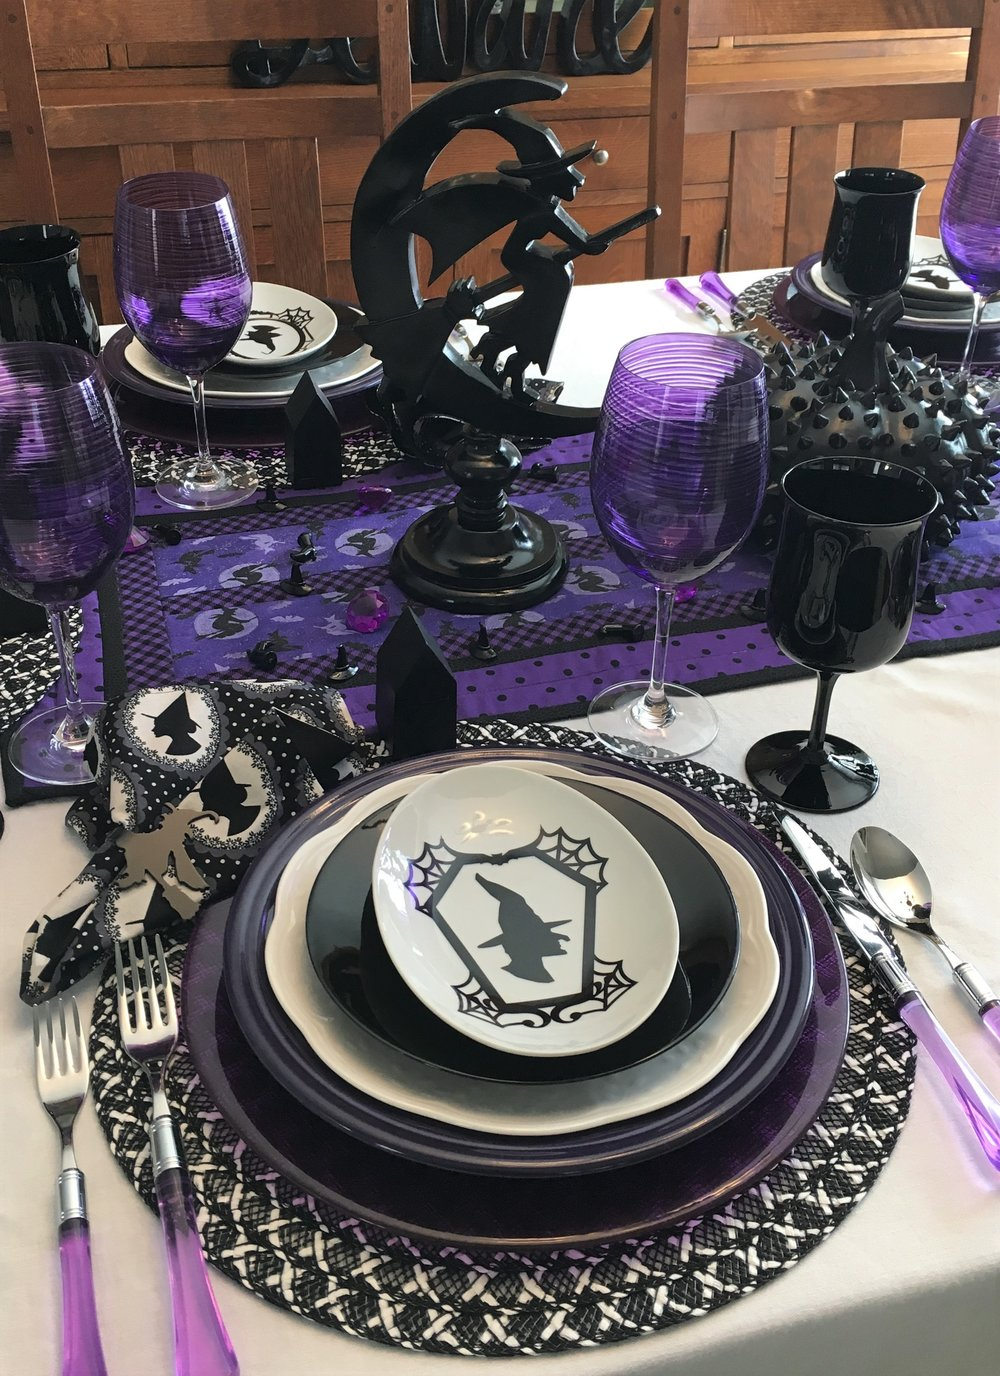 The witch centerpieces came from Pier1. They were a distressed black and I am not a fan of distressed wood so my hubby spray painted them for me, love the way they turned out. The black studded pumpkin is from Pier1 as well as the place mats. Pier1 has good sales from time to time. The chargers are Bormioli Rocco Inca in purple and I bought them on sale on Amazon. Have a few other colors of this one, it is really heavy glass. The picture looks dark but it is a really pretty purple color. Found the purple goblets at HomeGoods. I was able to get 6 at one store and 6 at another one. The black goblets came from Ebay, they are Premiere by the Libbey Glass Company.